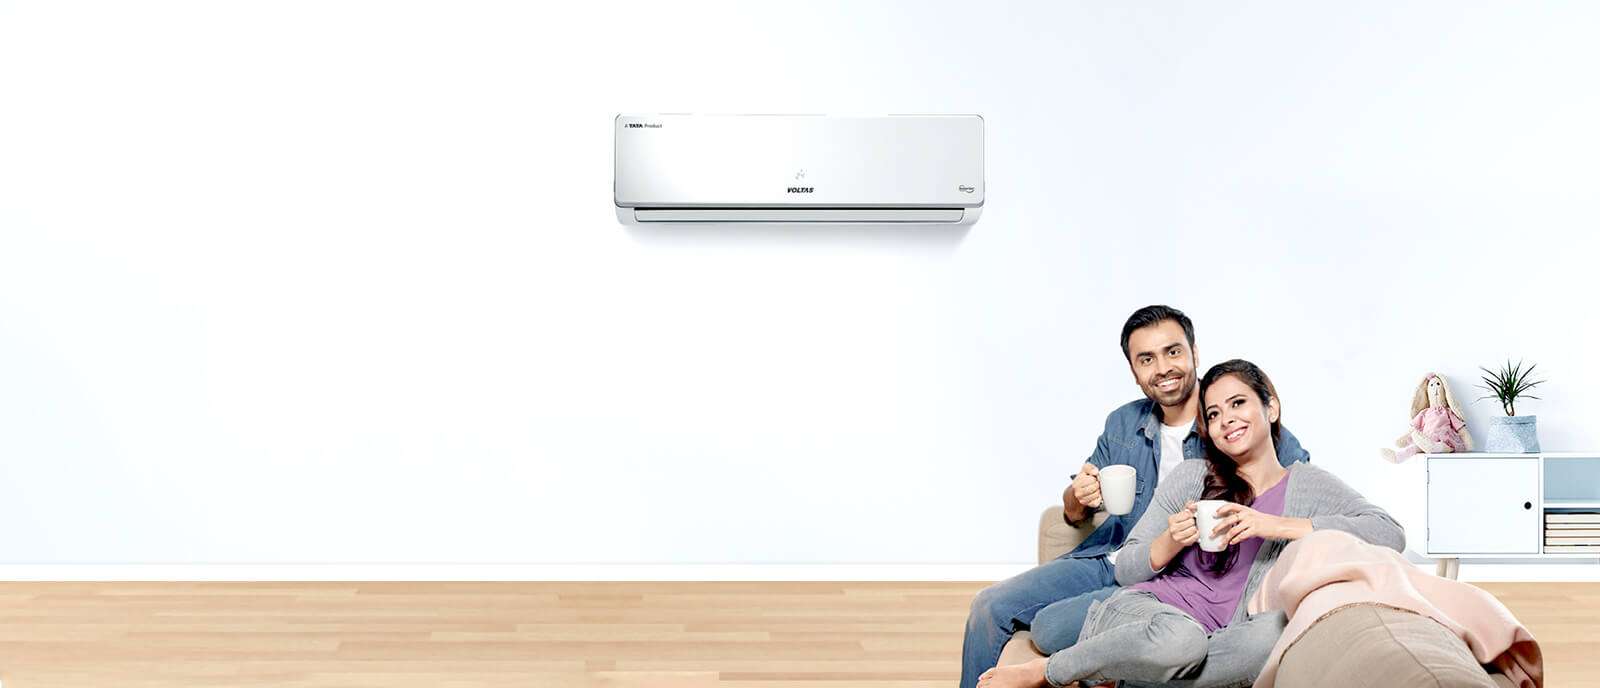 Voltas Inverter AC | All star Inverter Air Conditioner